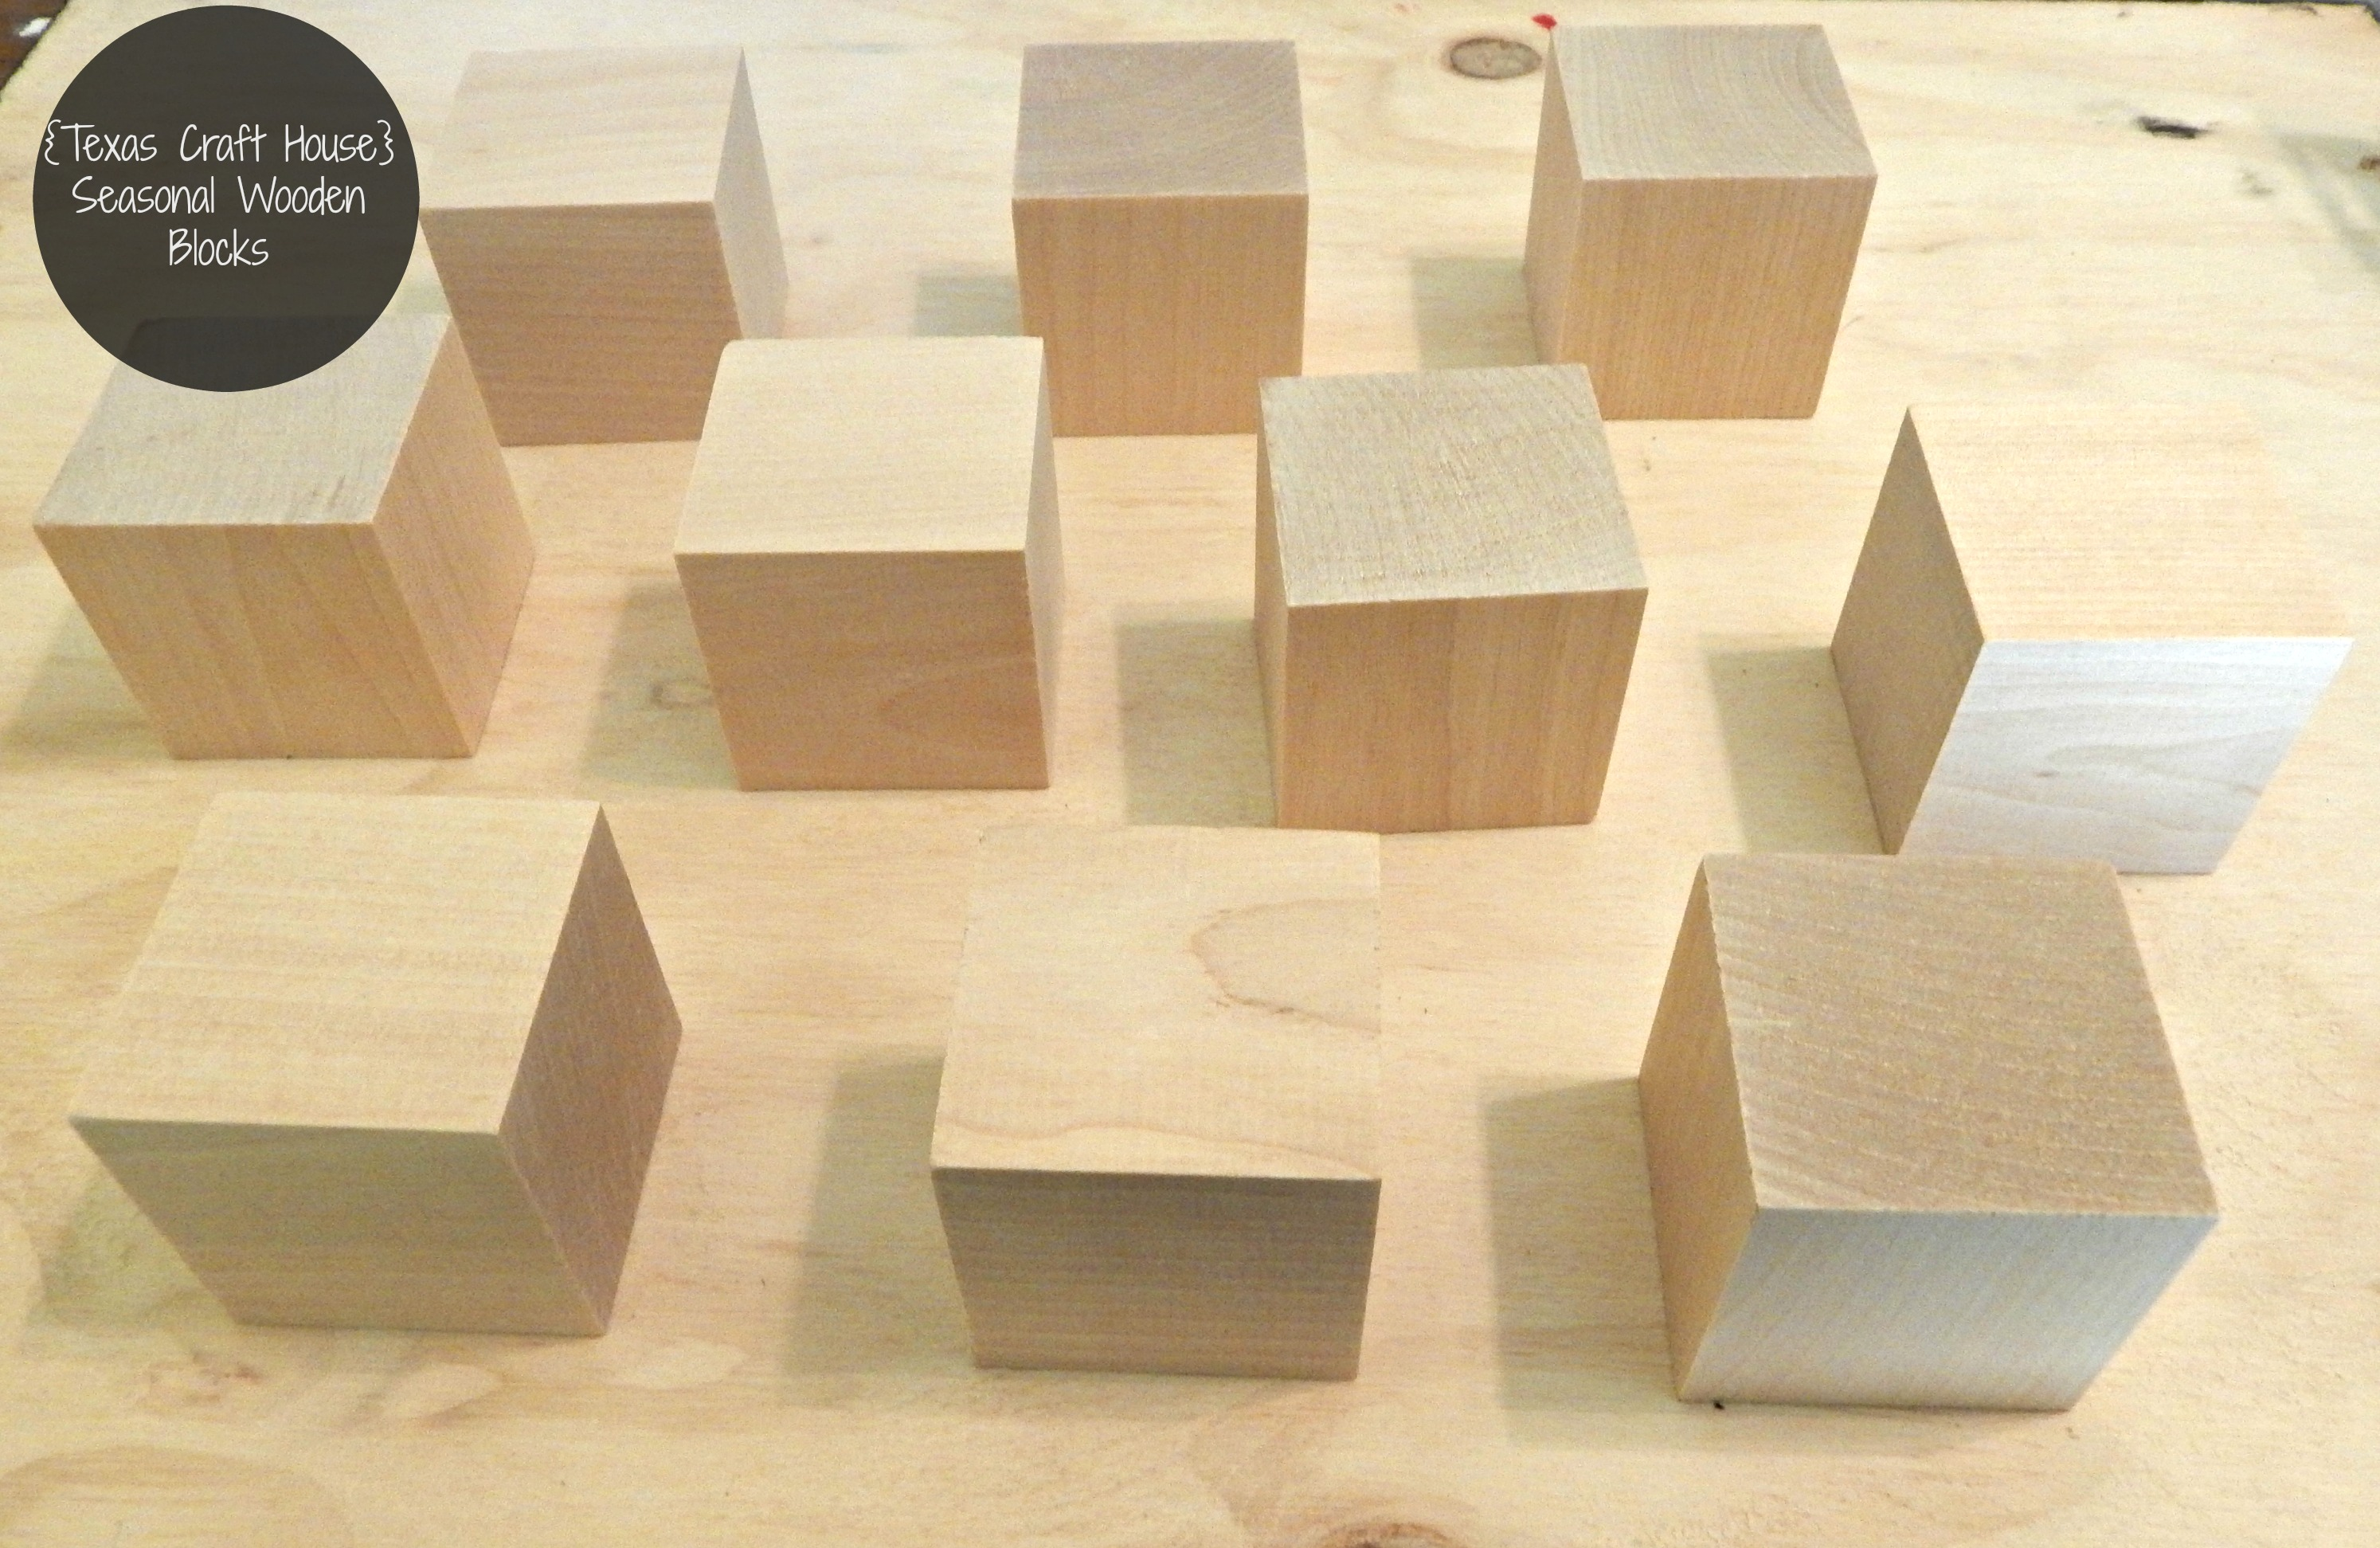 Wooden Blocks For Crafts ~ Seasonal wooden blocks texas craft house